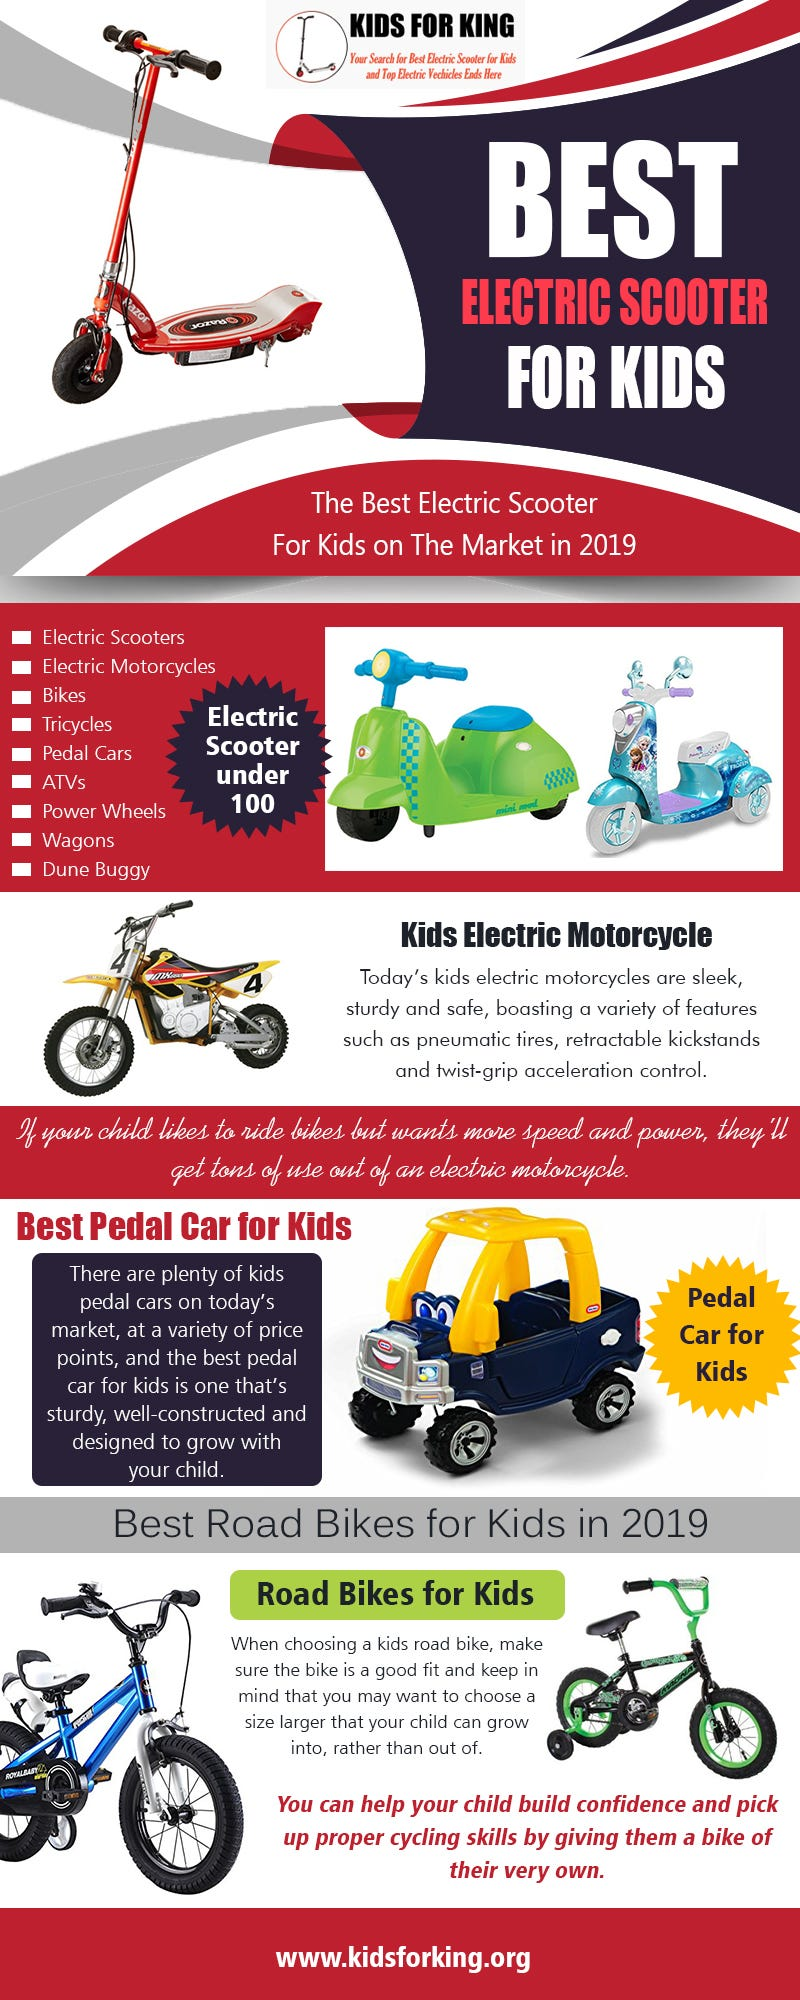 Illustration for article titled Best Electric Scooter for Kids | kidsforking.org